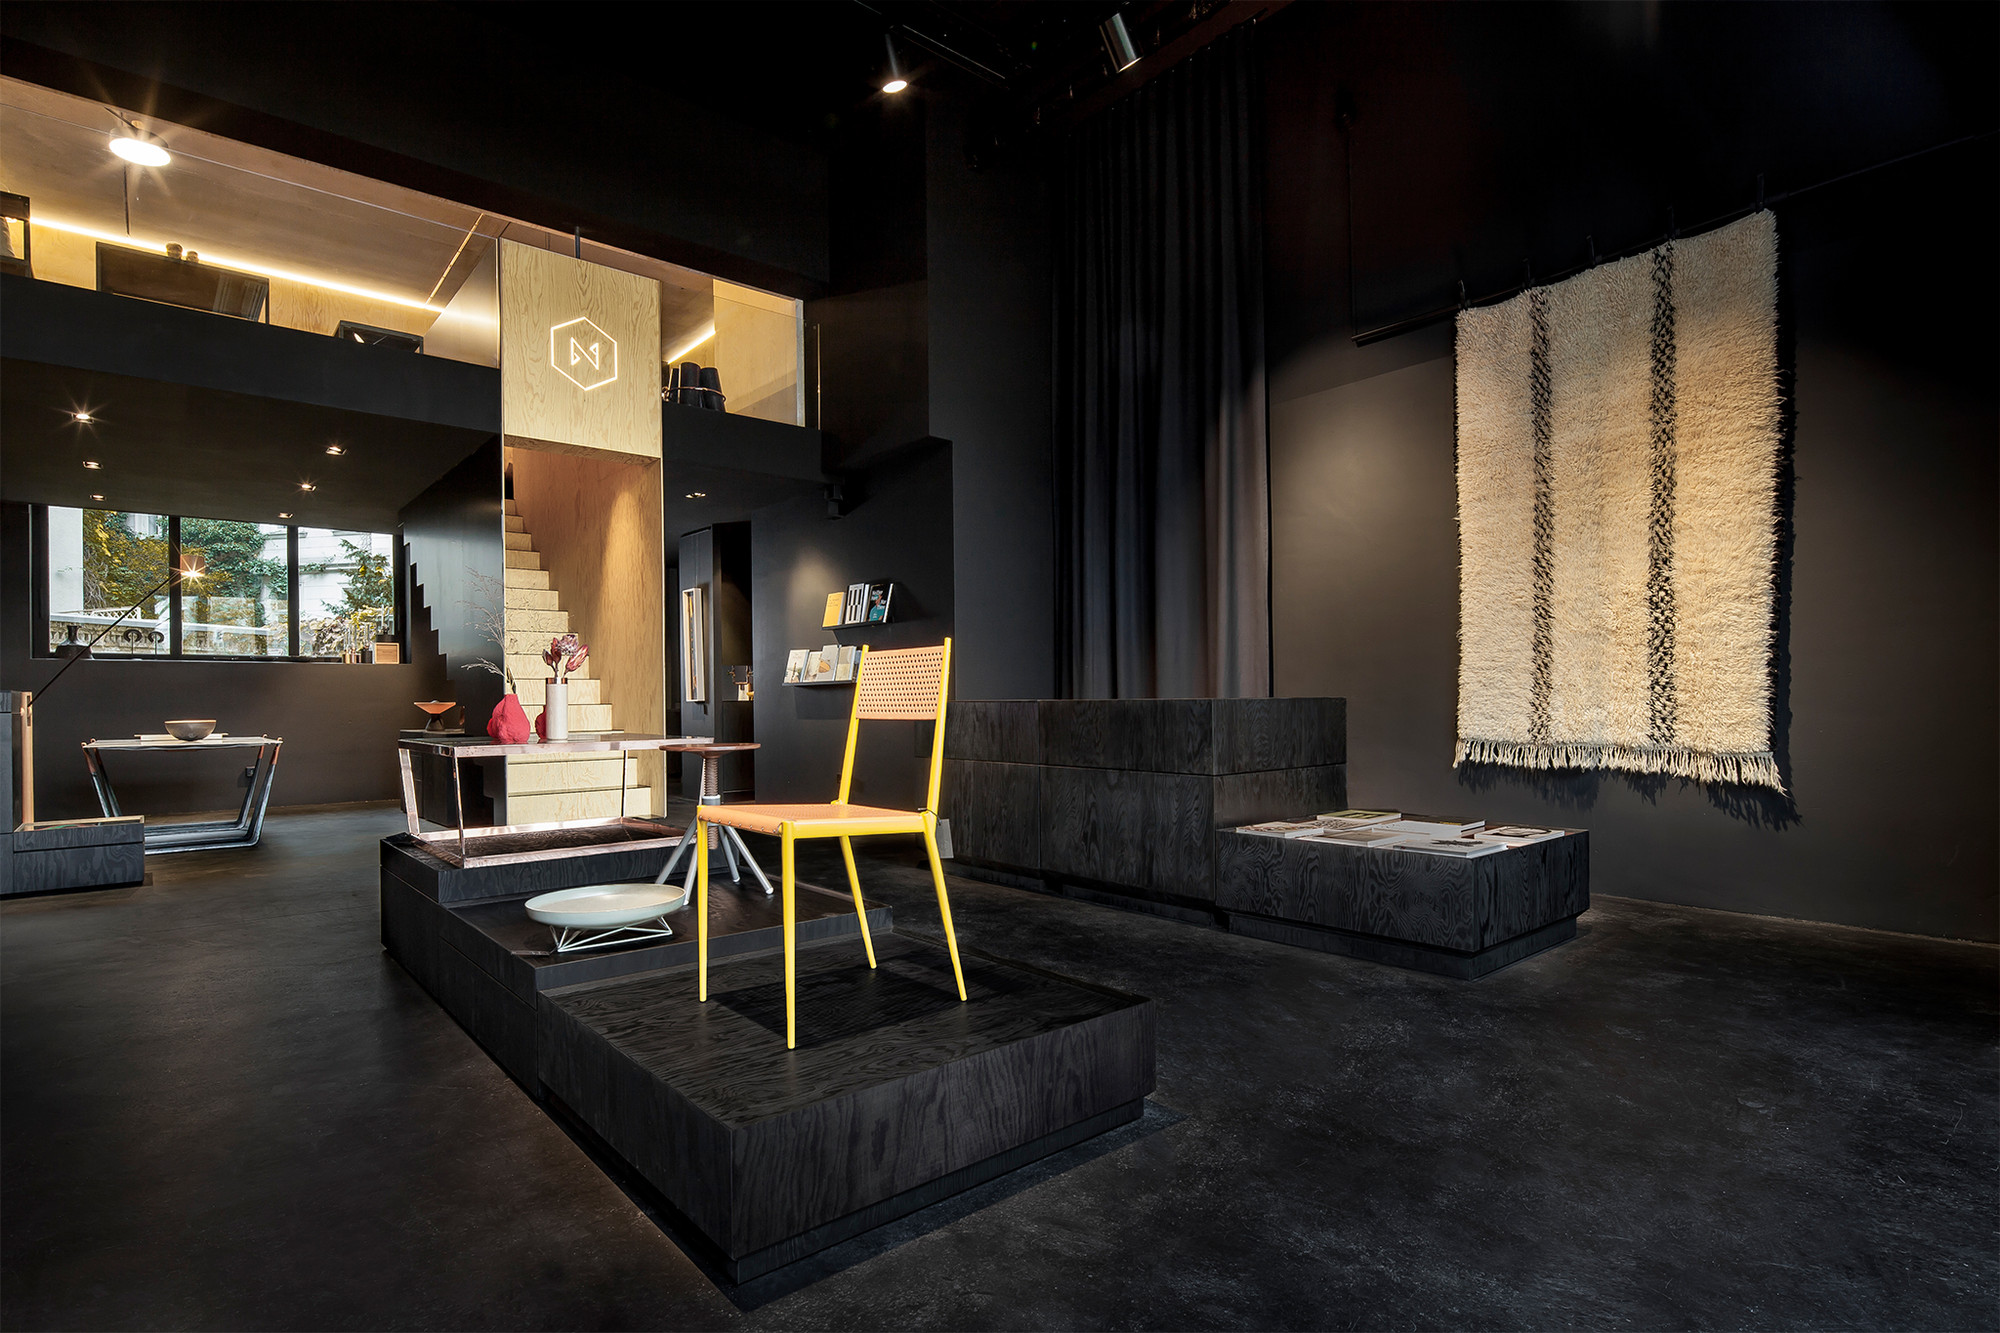 Bazar noir hidden fortress archdaily for All black room design